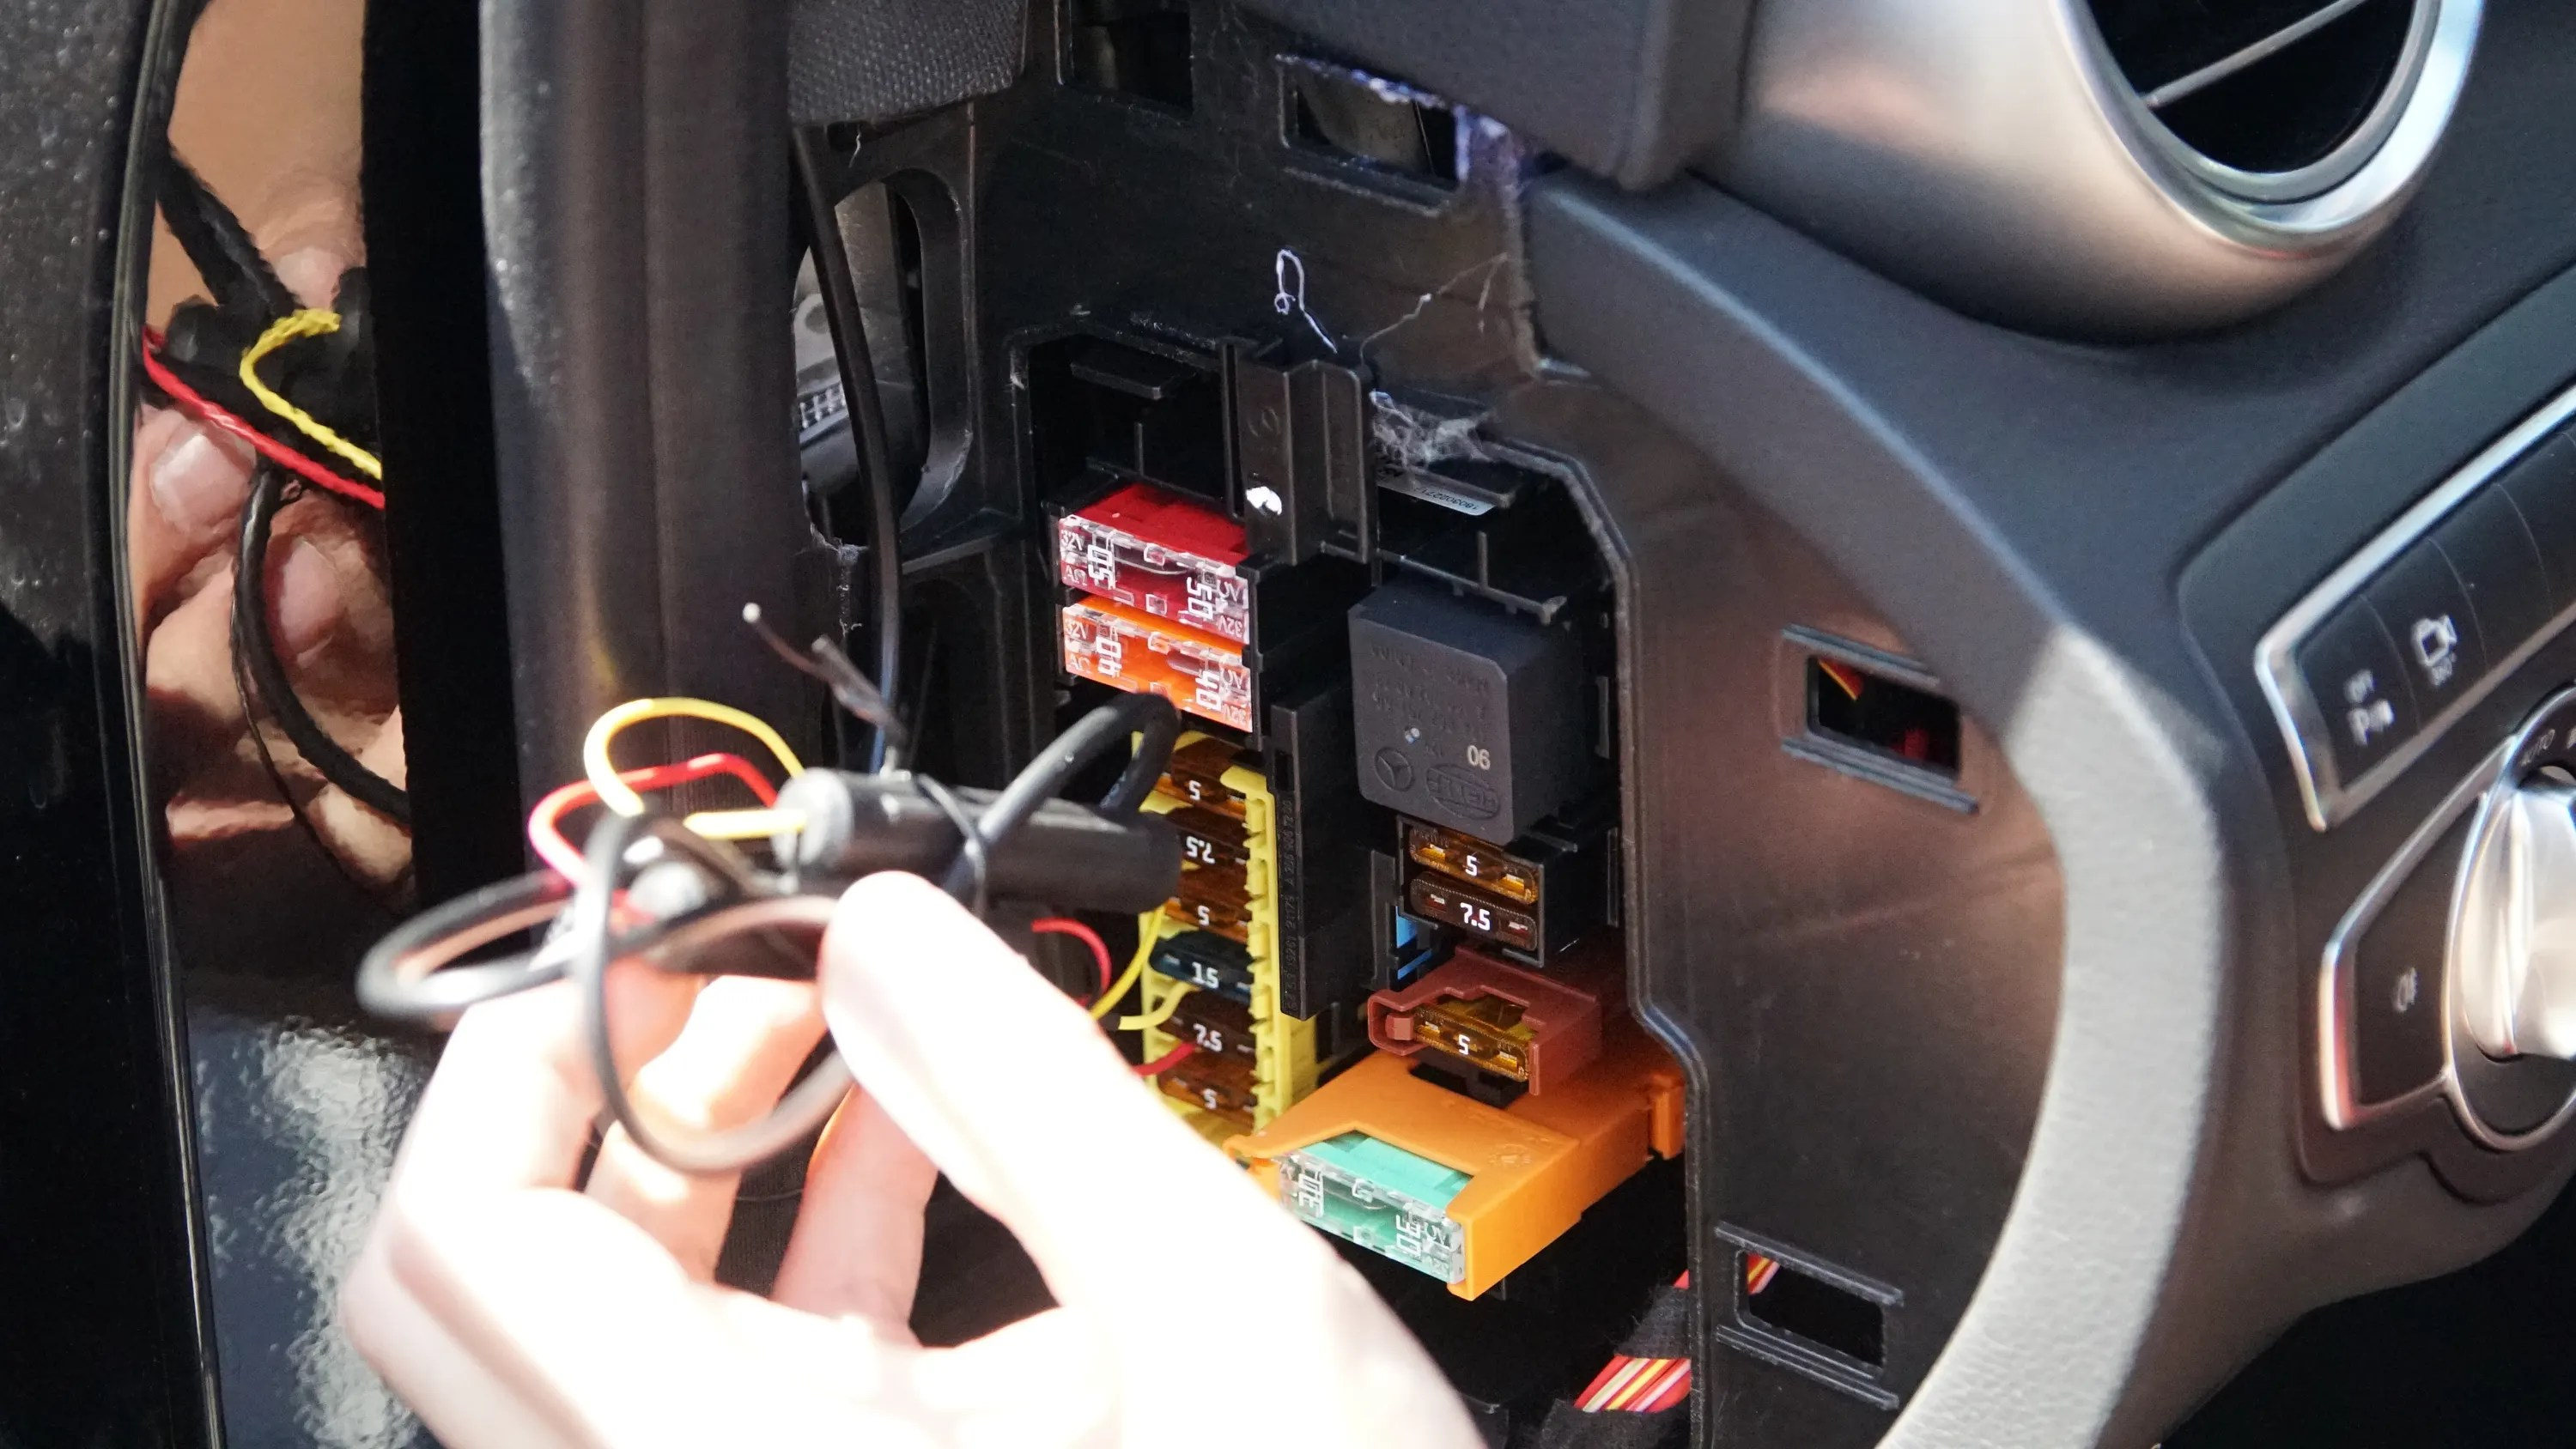 2013 Vw Jetta Fuse Box Diagram Wiring Diagram Photos For Help Your